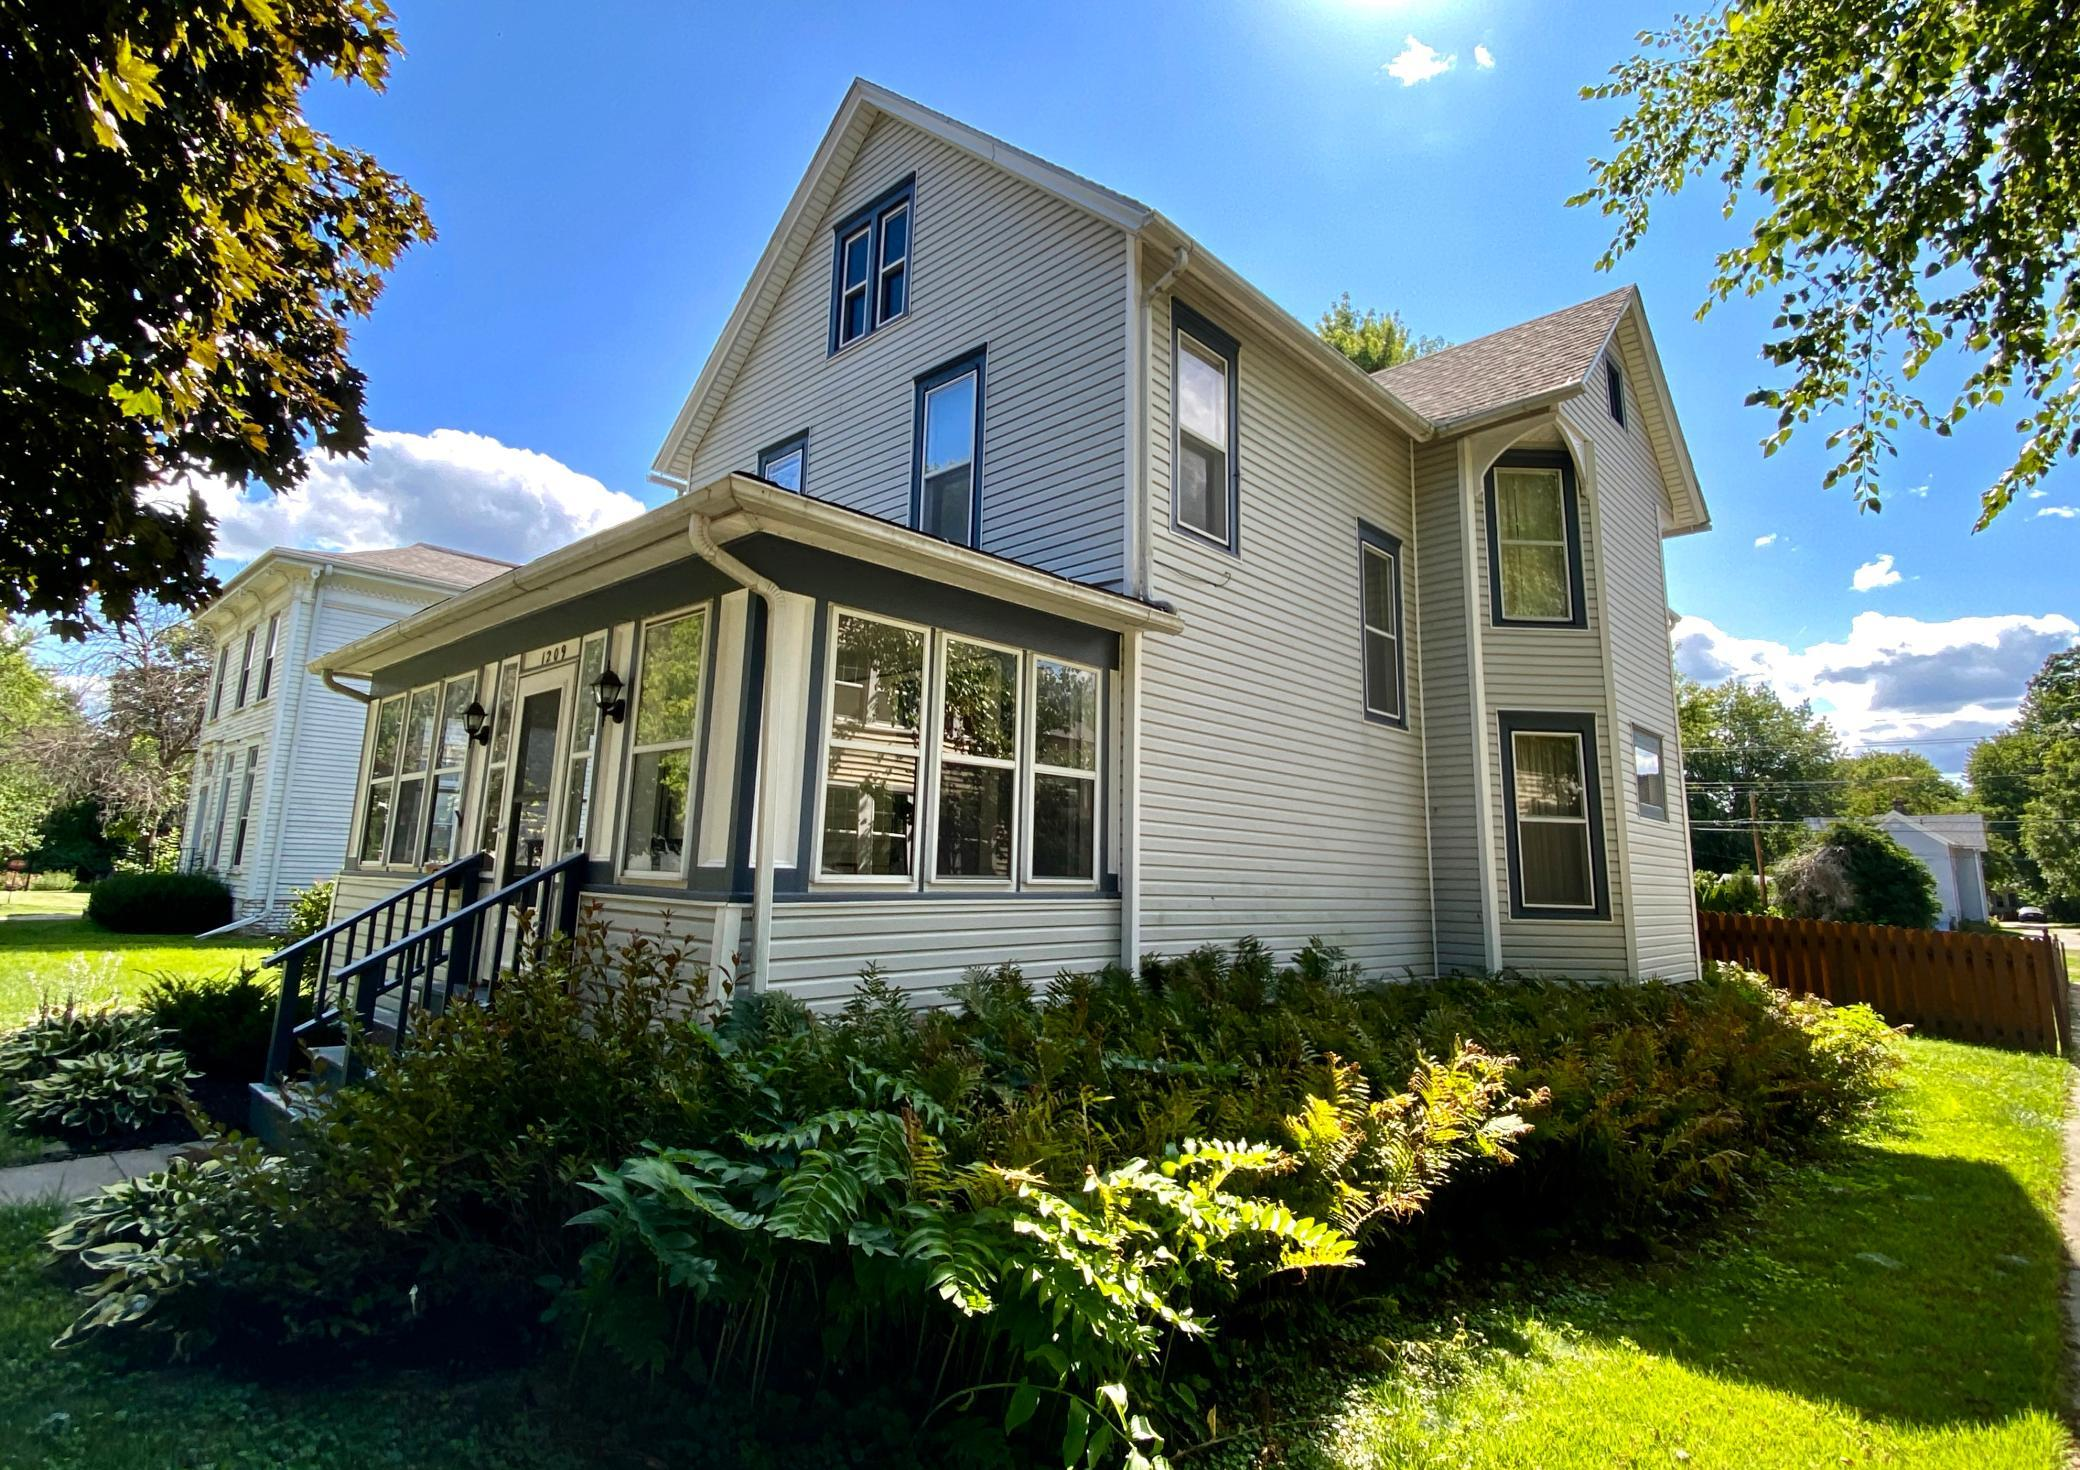 1209 Broad, Grinnell, Iowa 50112-1629, 4 Bedrooms Bedrooms, ,1 BathroomBathrooms,Single Family,For Sale,Broad,5560776